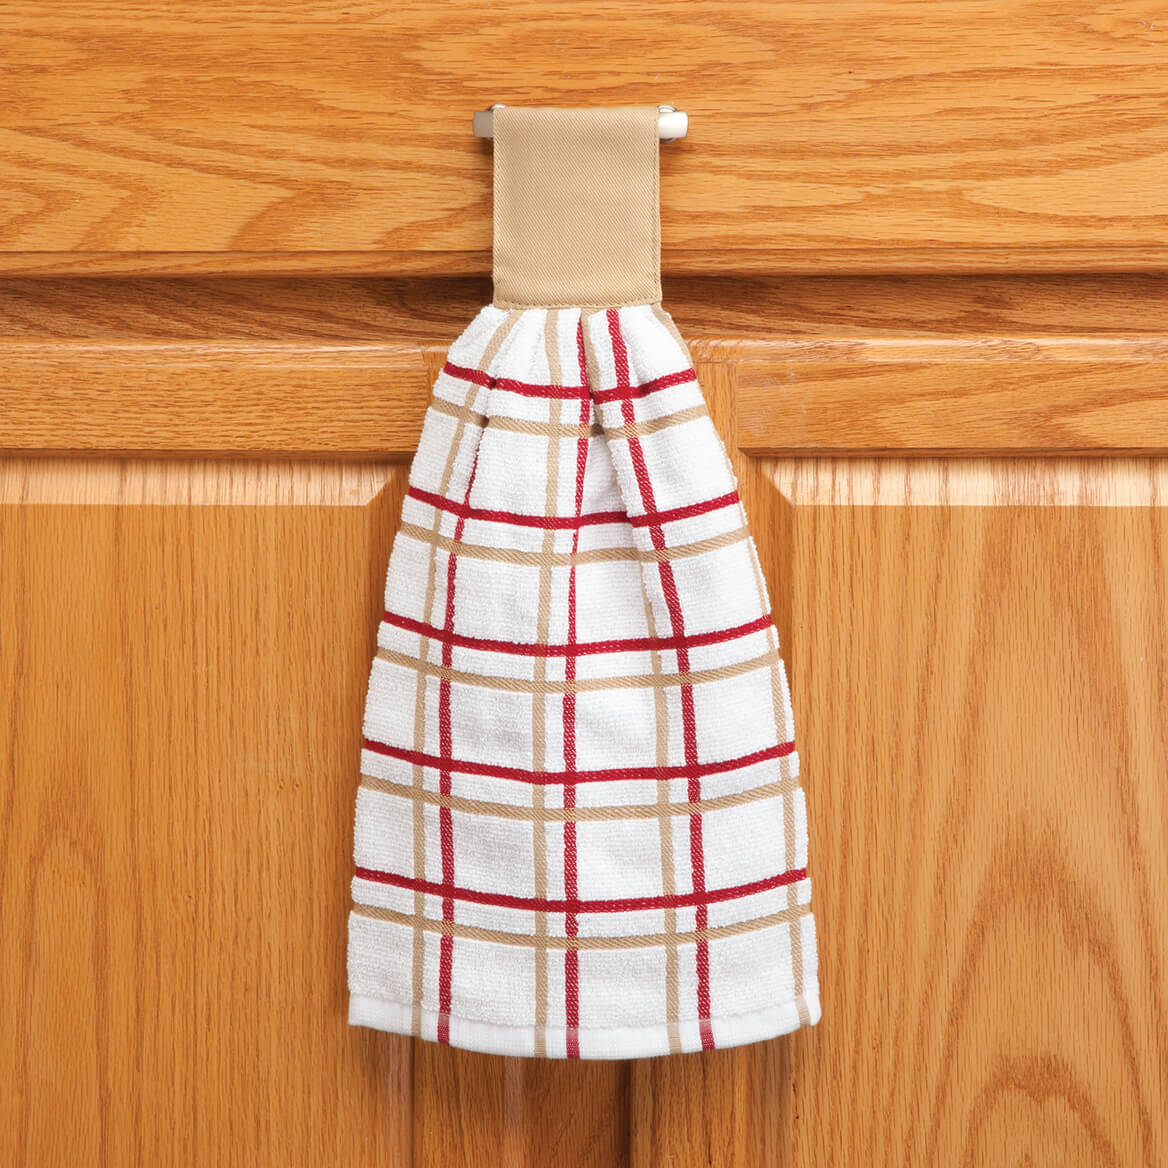 Cotton Hanging Towel - Checked-354570